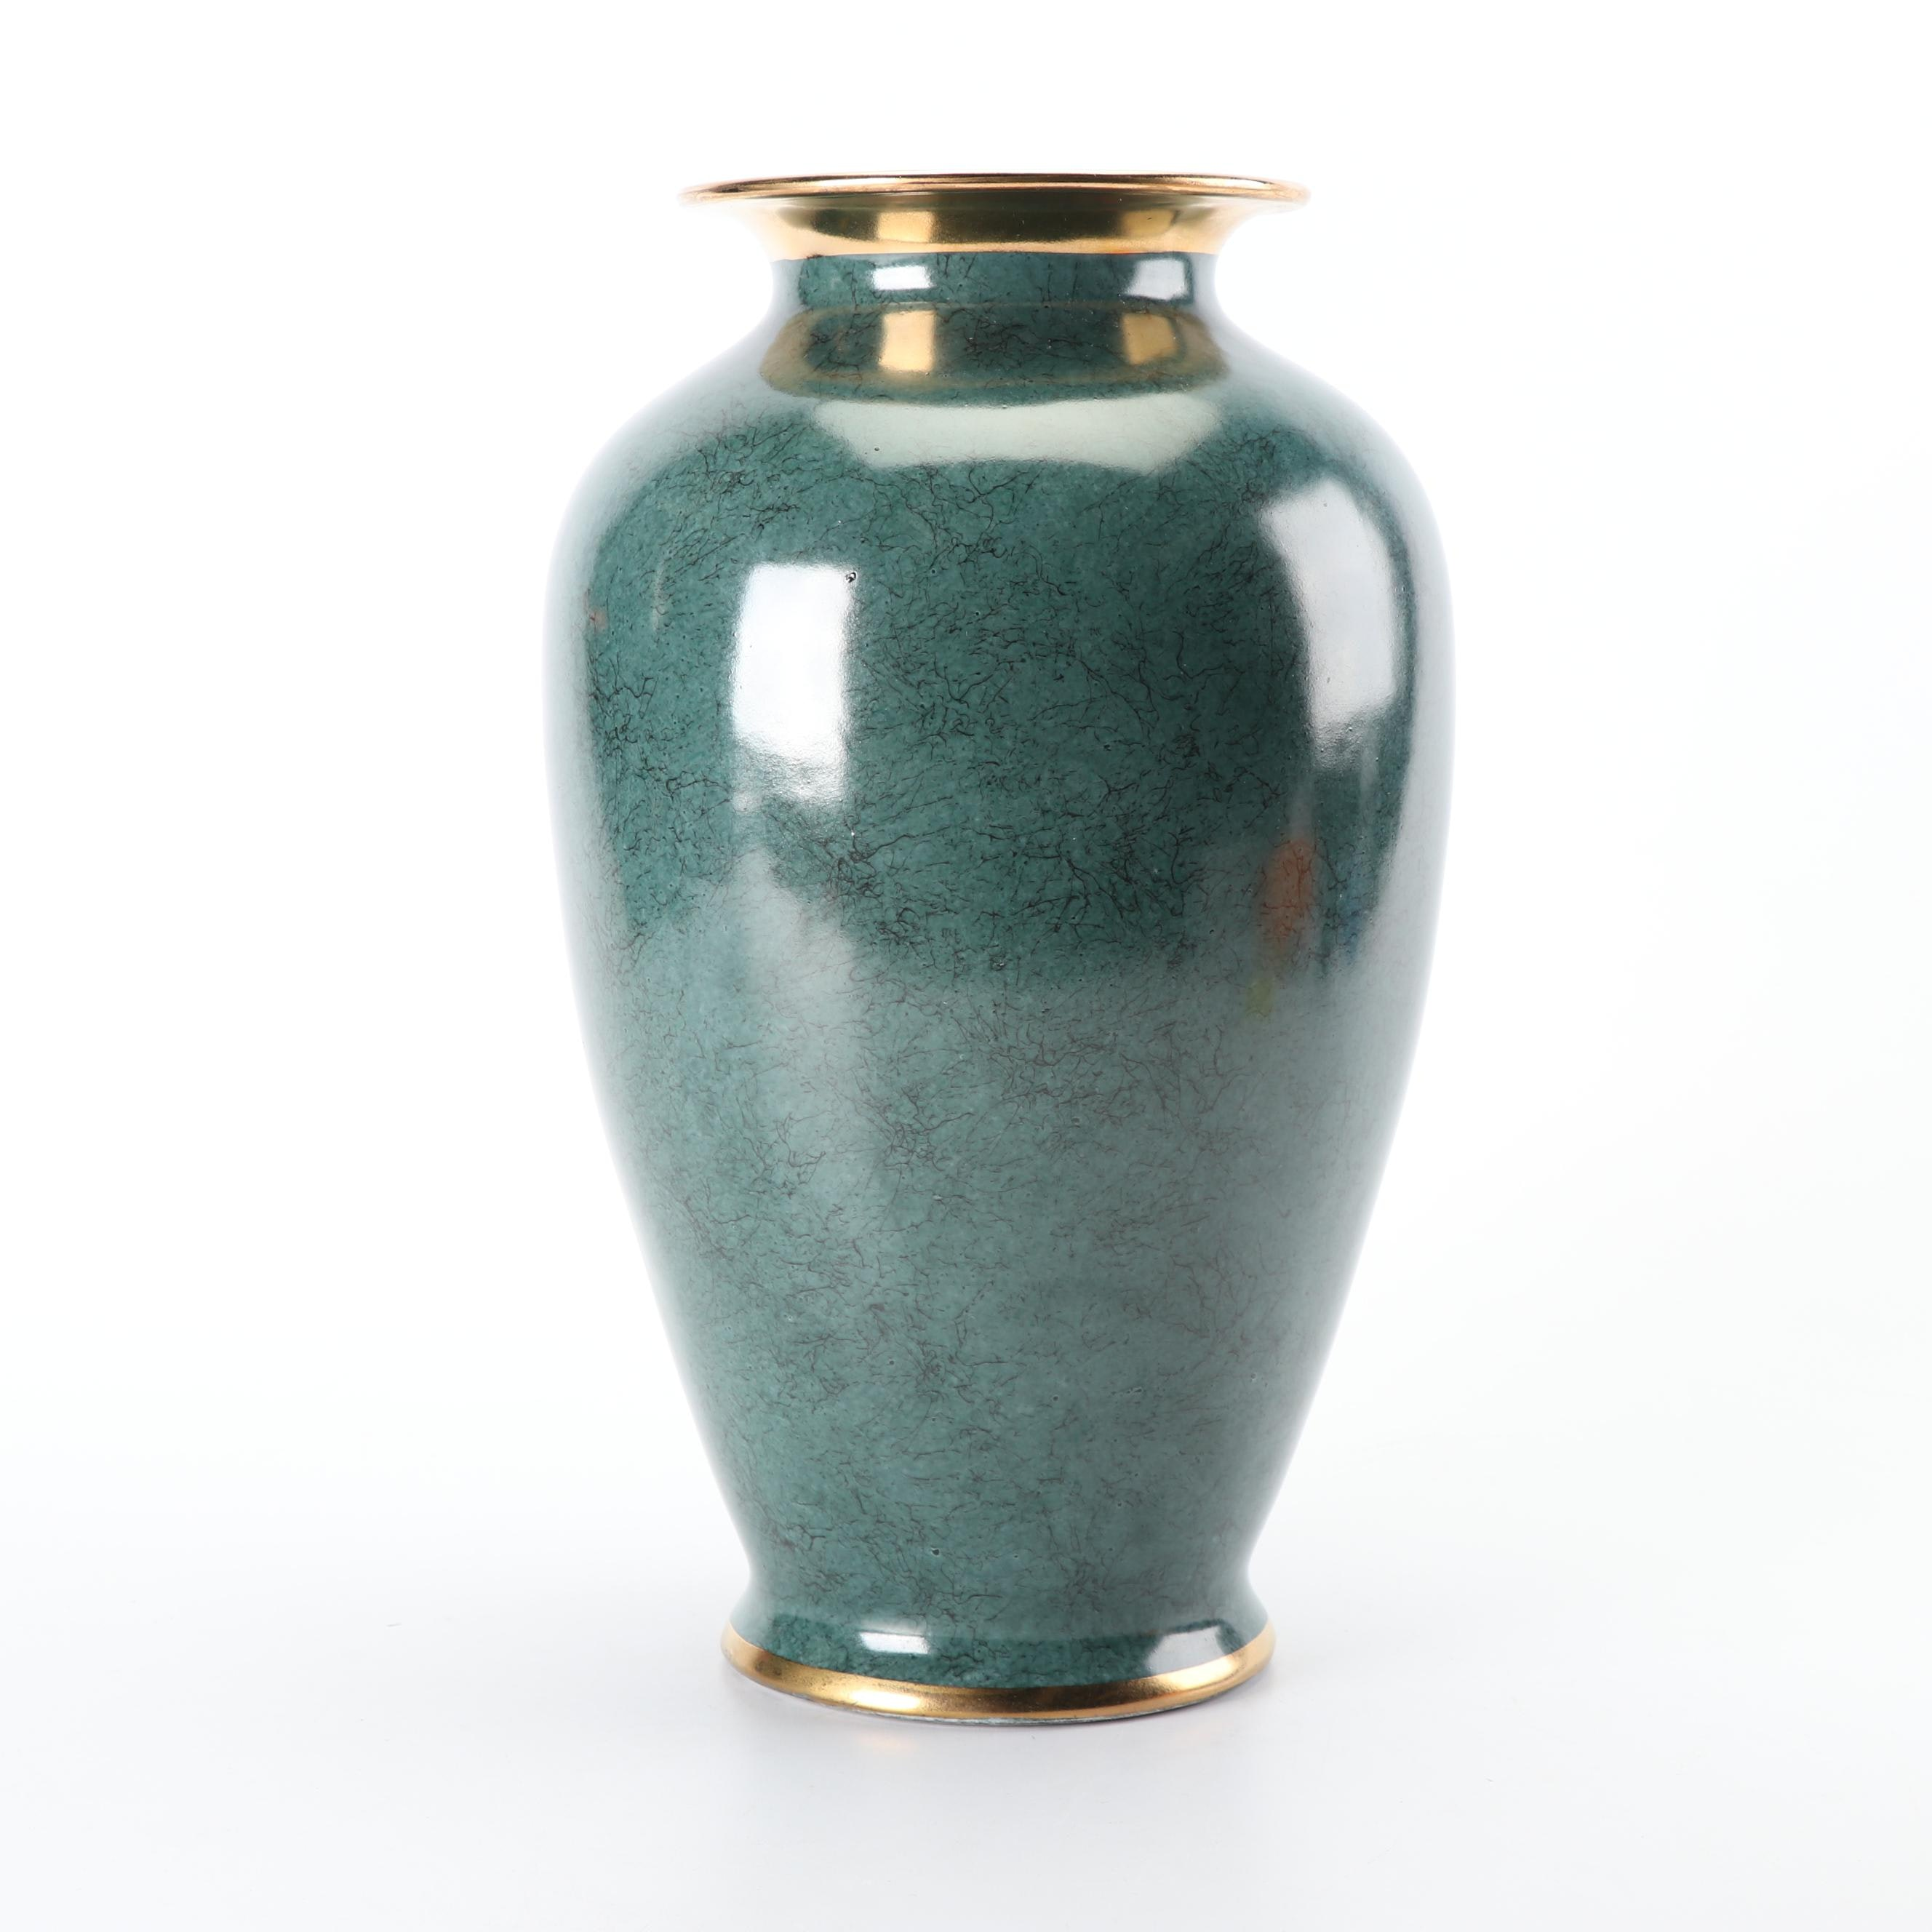 Chinese Ceramic Vase with Gold Metallic Trim